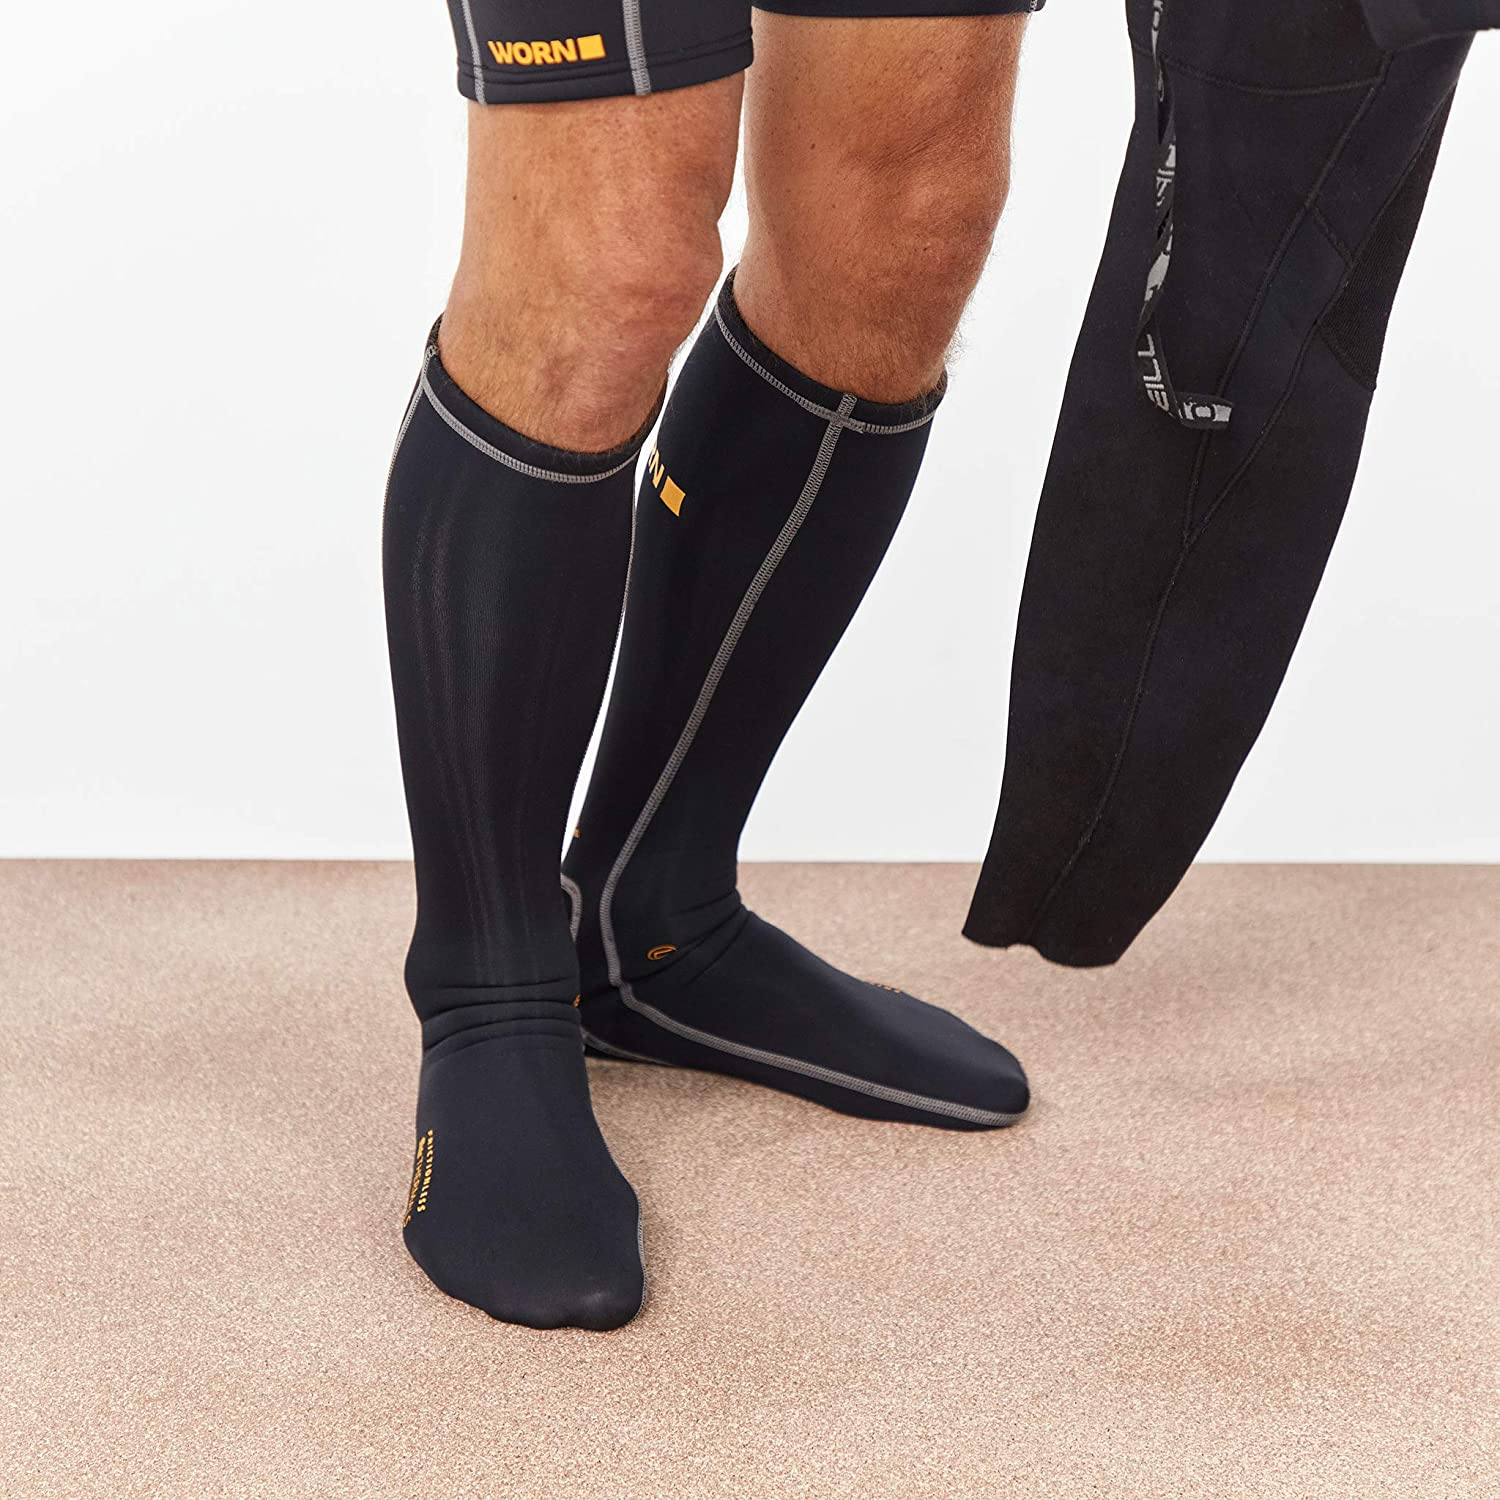 WORN Frictionless Thermal Wetsuit /& Boot Socks 1.5MM Insulation Channel Lined